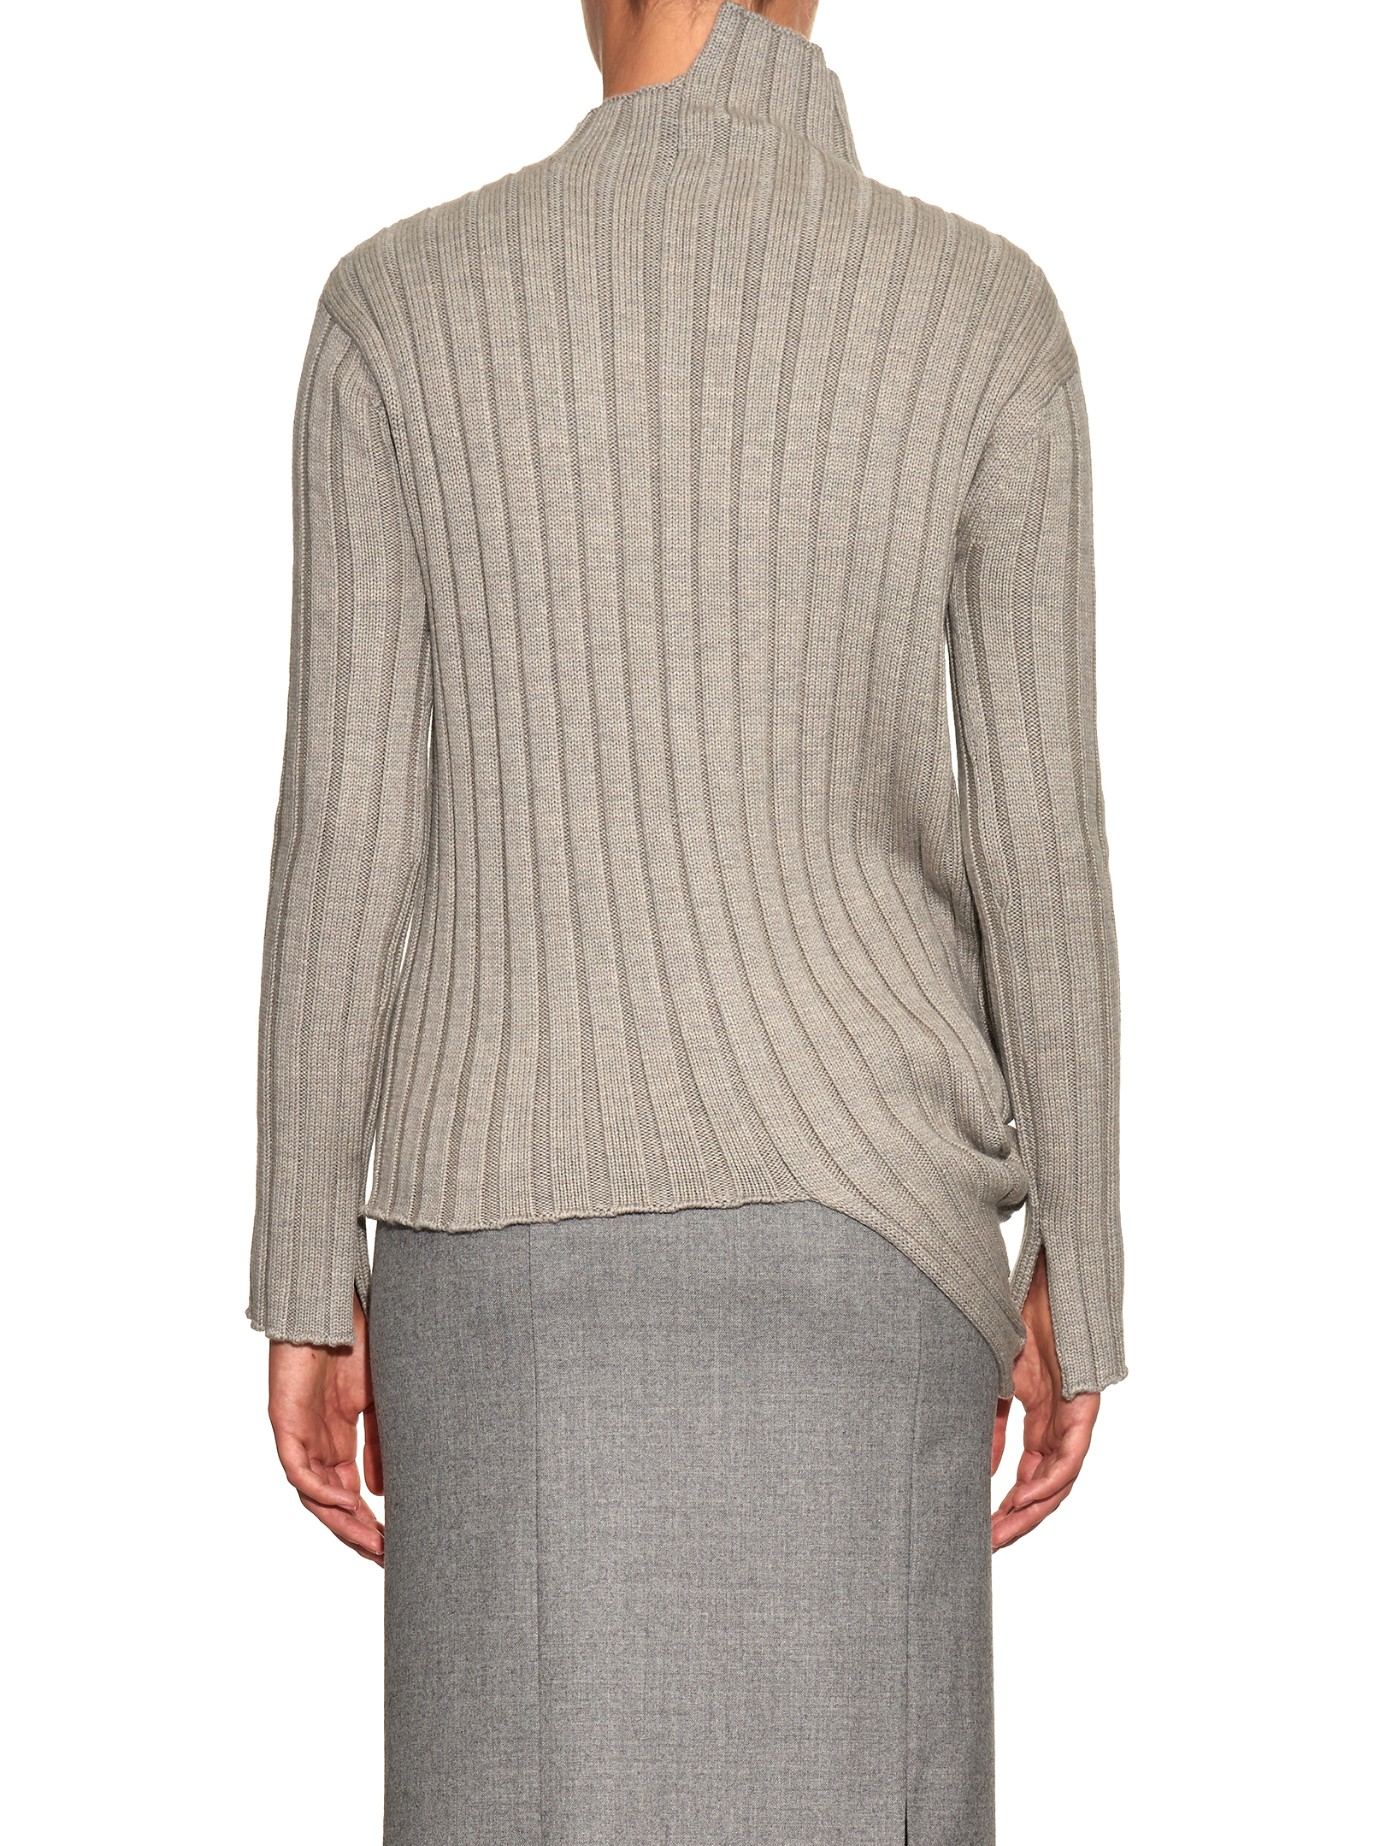 KNITWEAR - Jumpers Joseph Cheap Price Outlet Sale E92GjyQTh